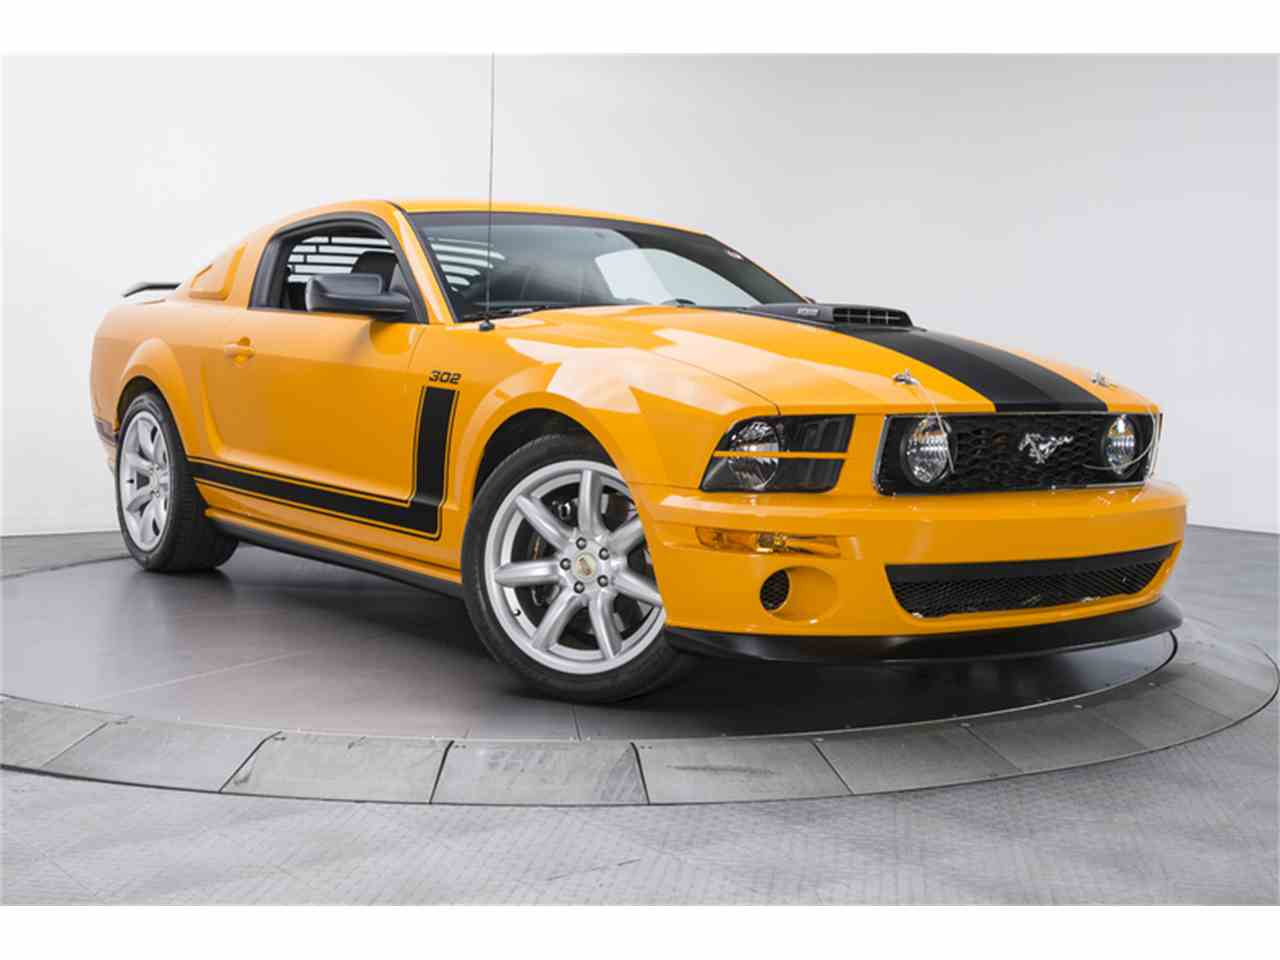 Large Picture of '07 Ford Mustang located in North Carolina - $42,900.00 - LWIA